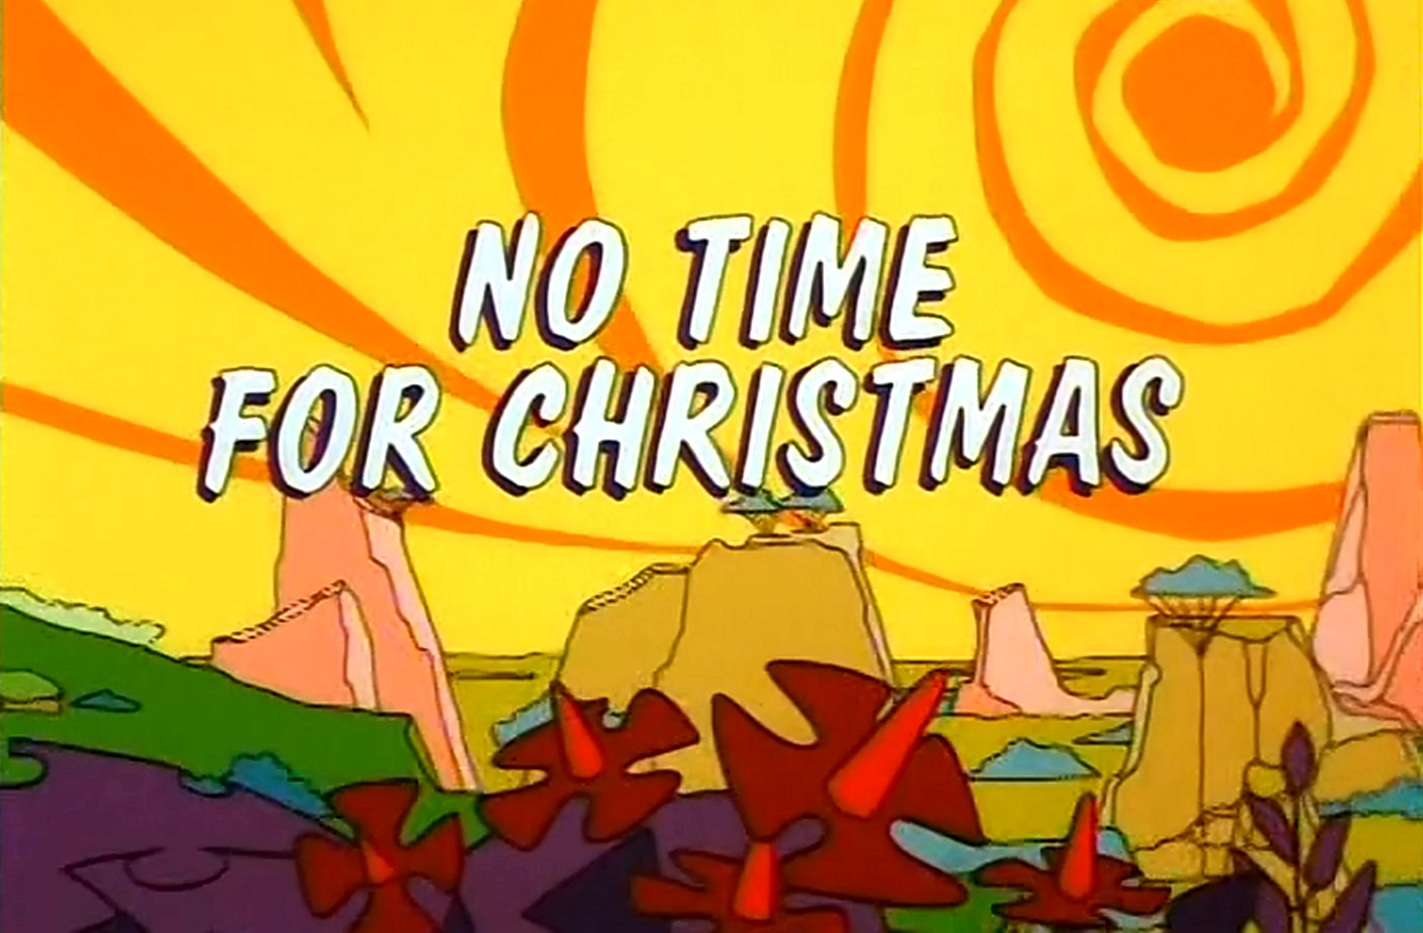 no time for xmas